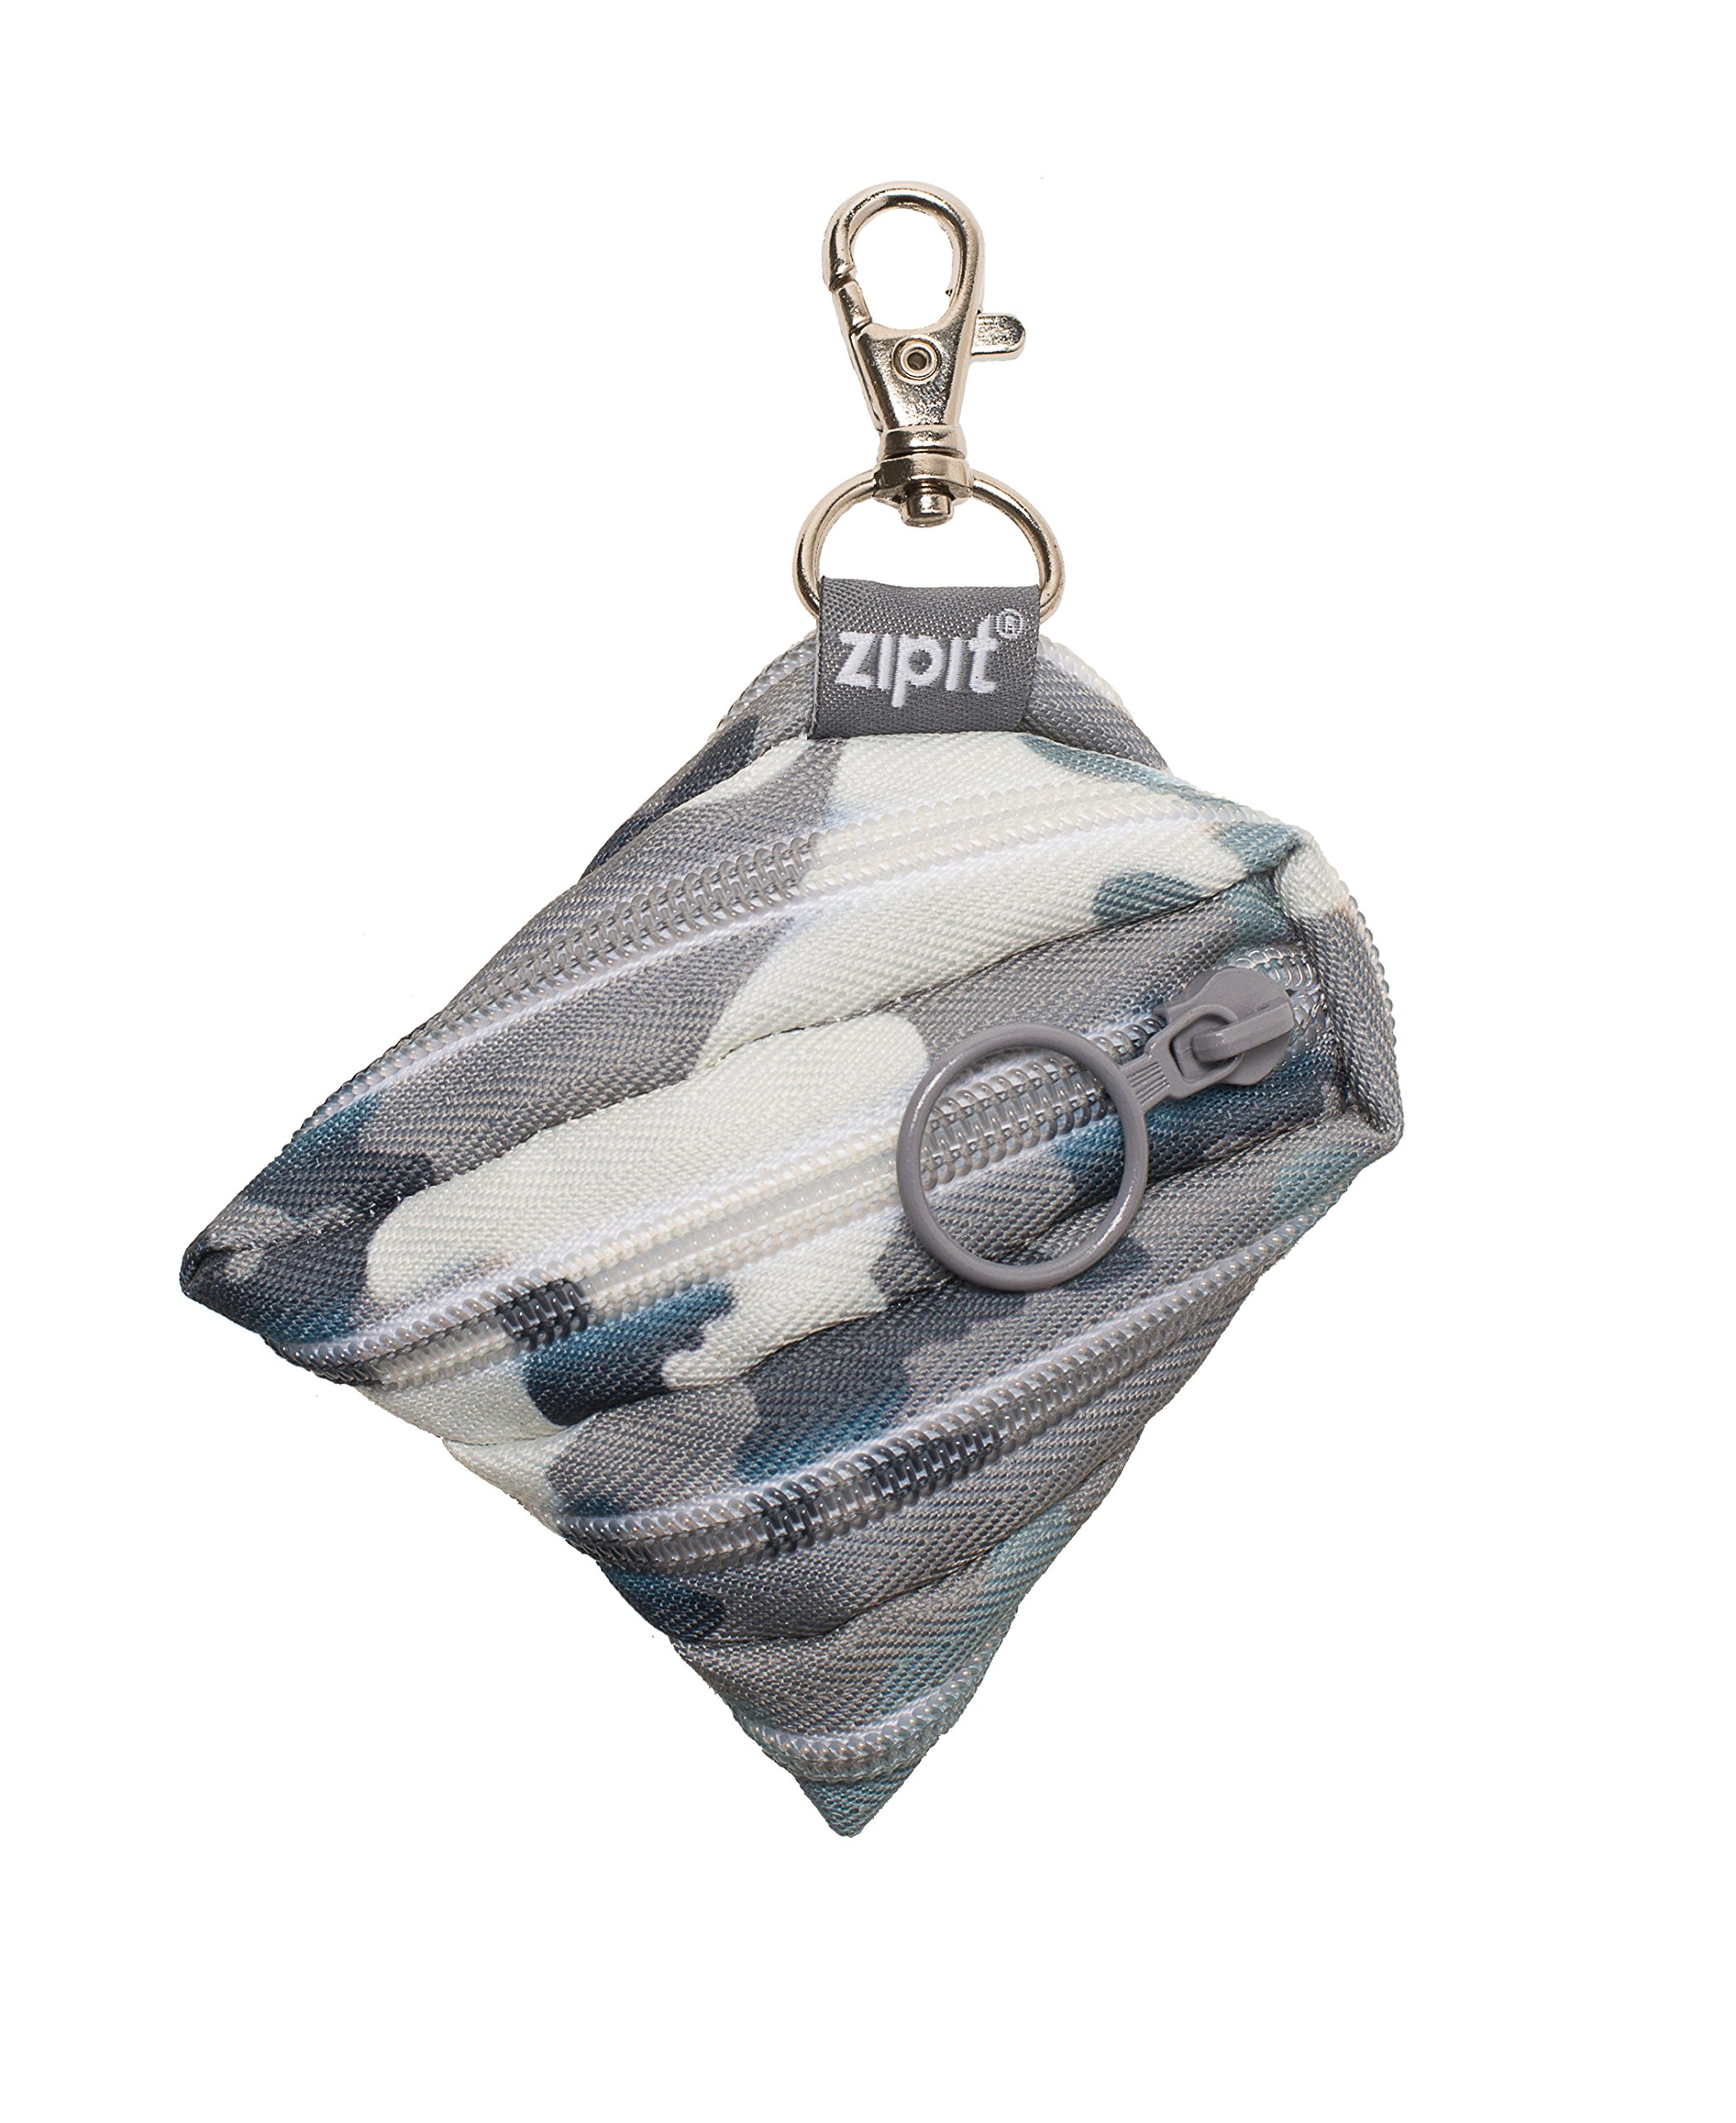 ZIPIT Camo Mini Pouch/Coin Purse, Grey Camo